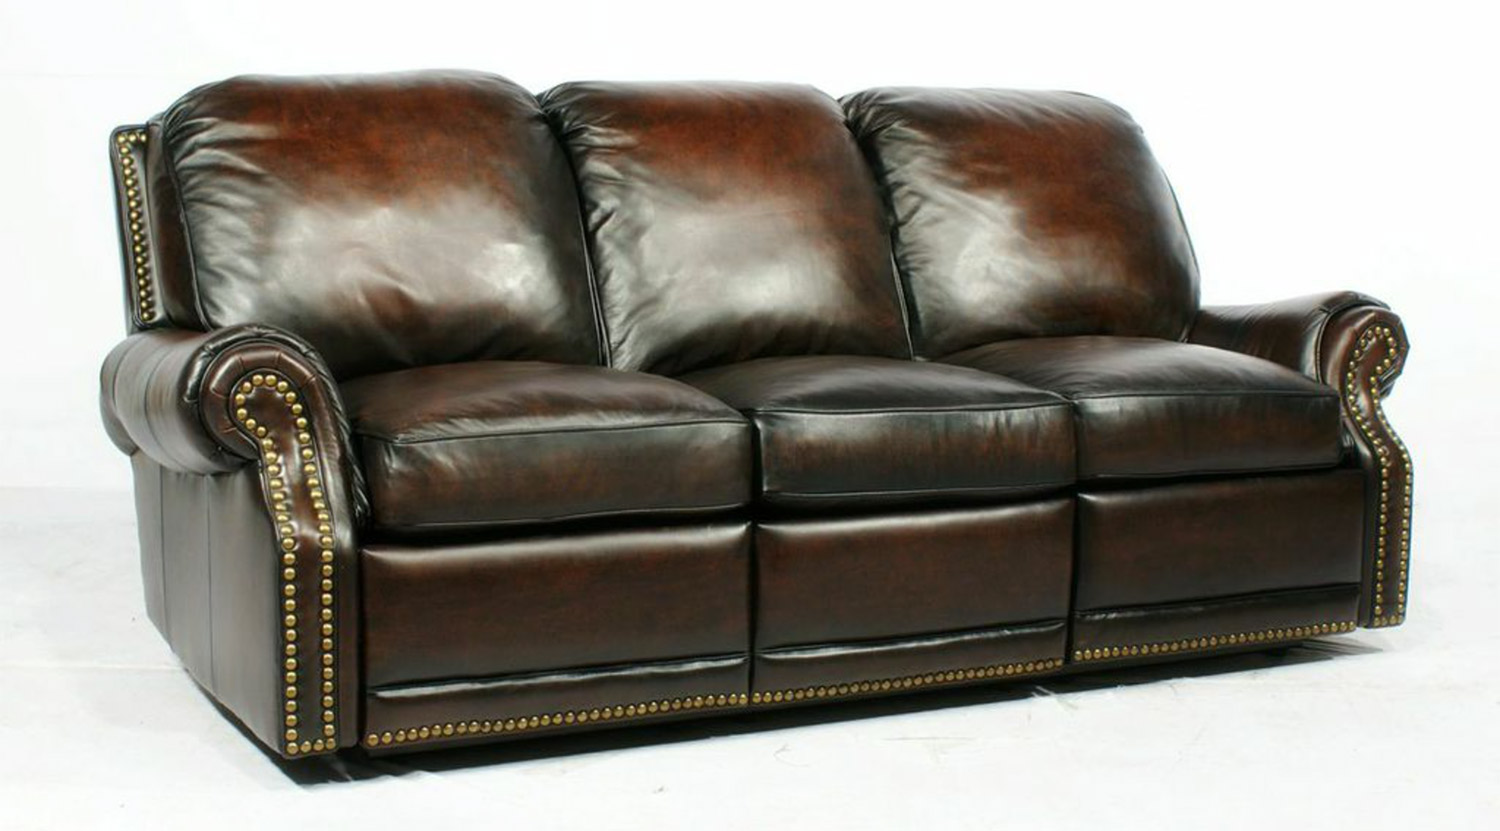 Barcalounger Premier Power Reclining Sofa - Stetson Coffee/All Leather